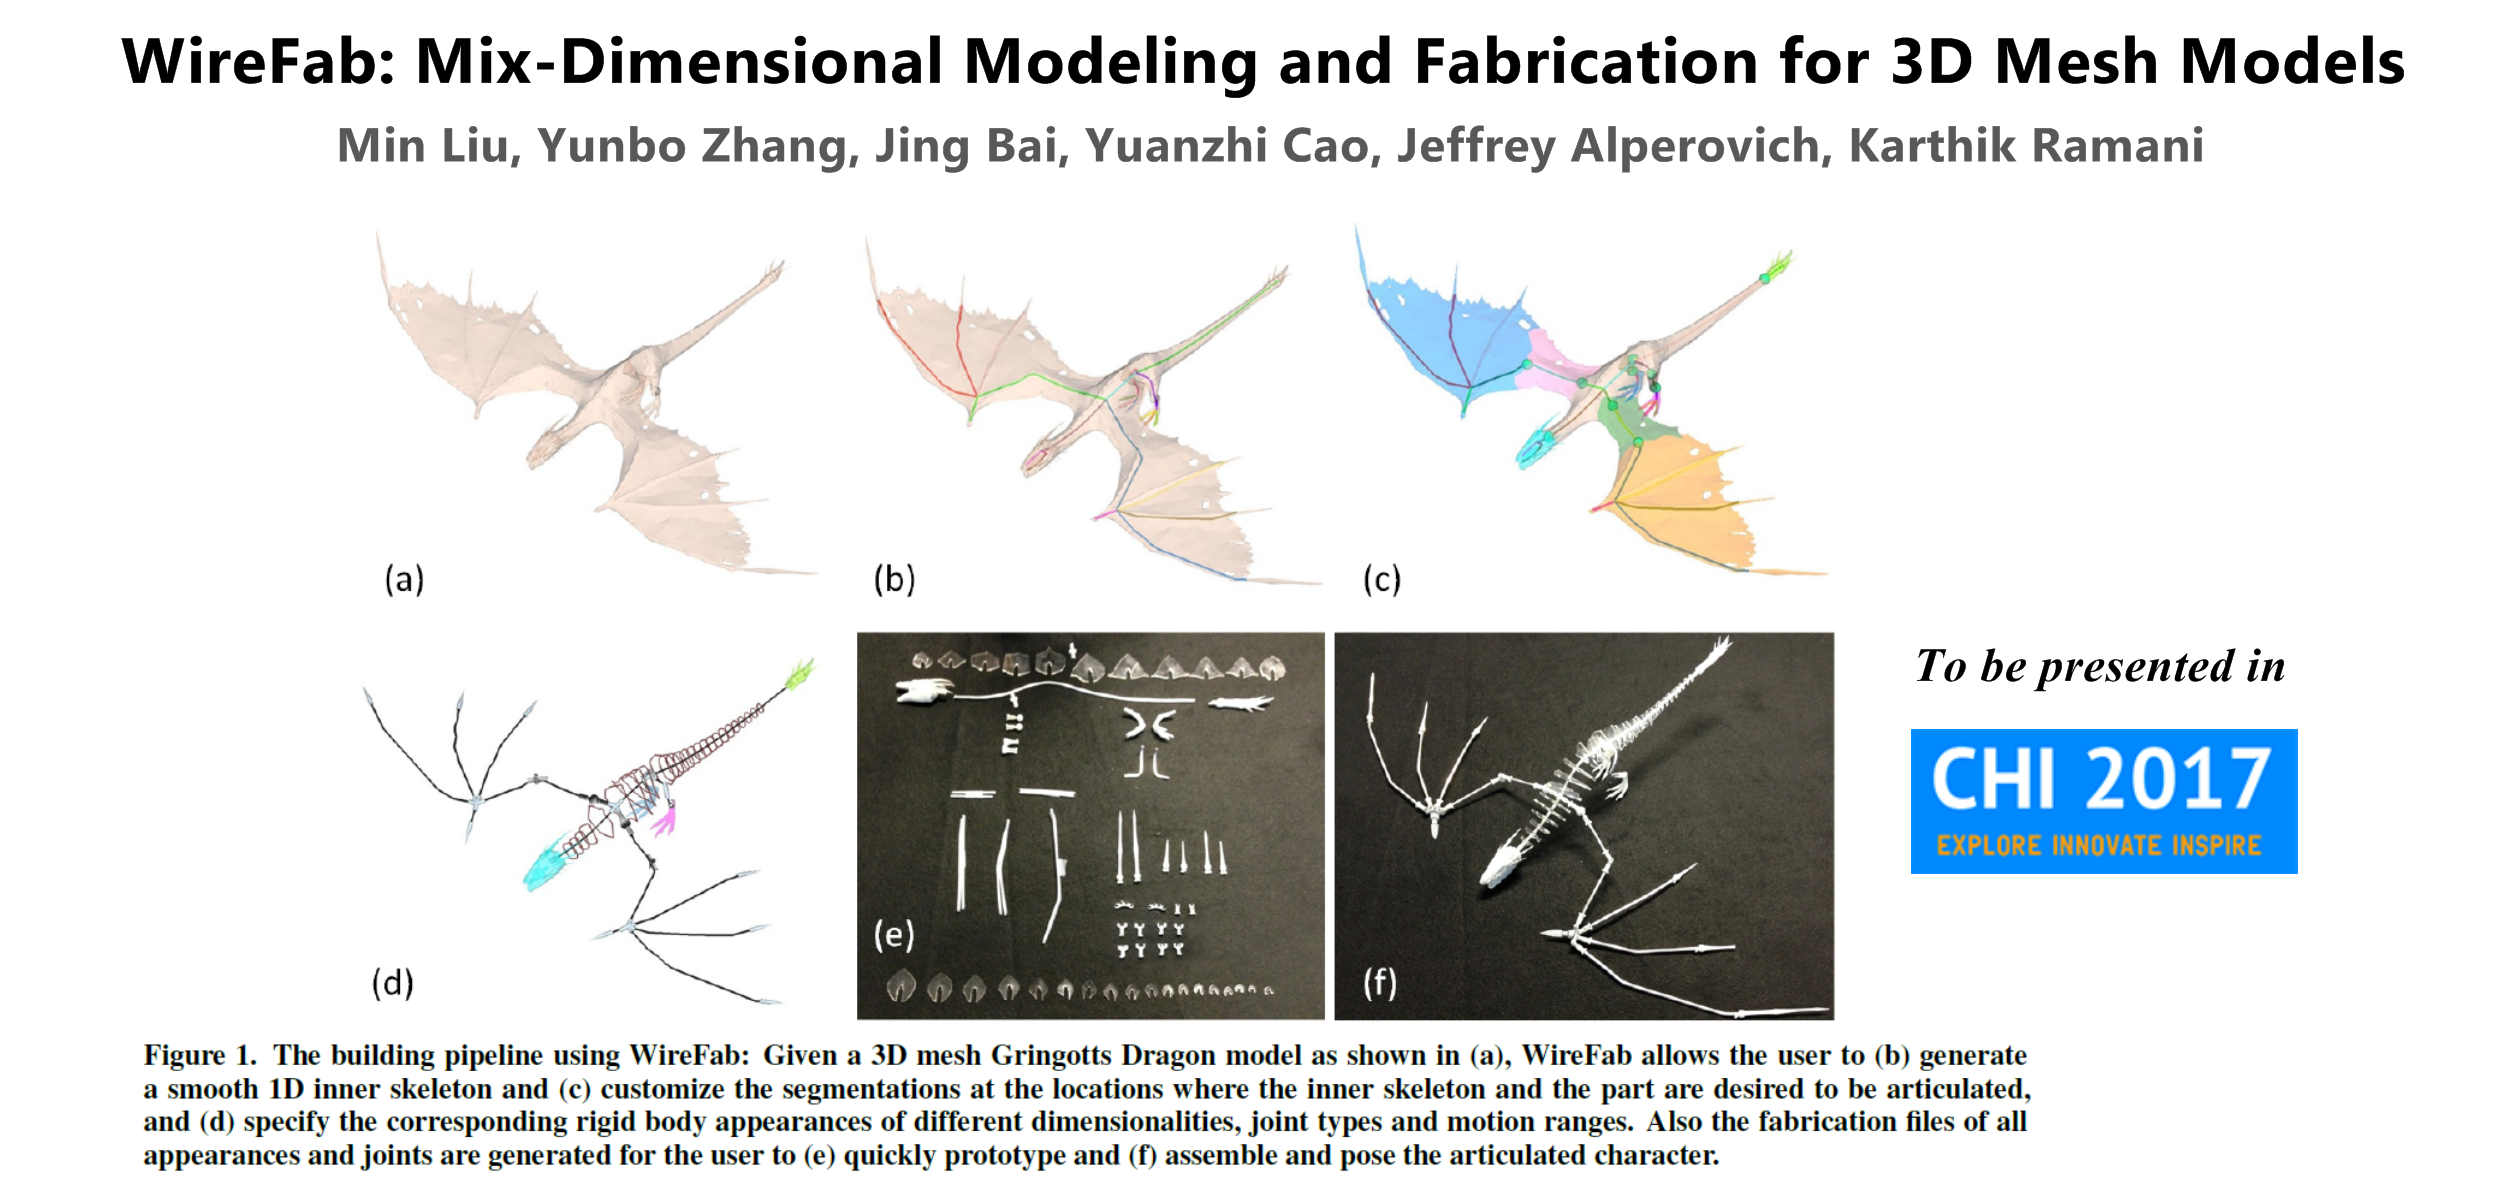 WireFab: Mix-Dimension Modeling and Fabrication for 3D Mesh Models